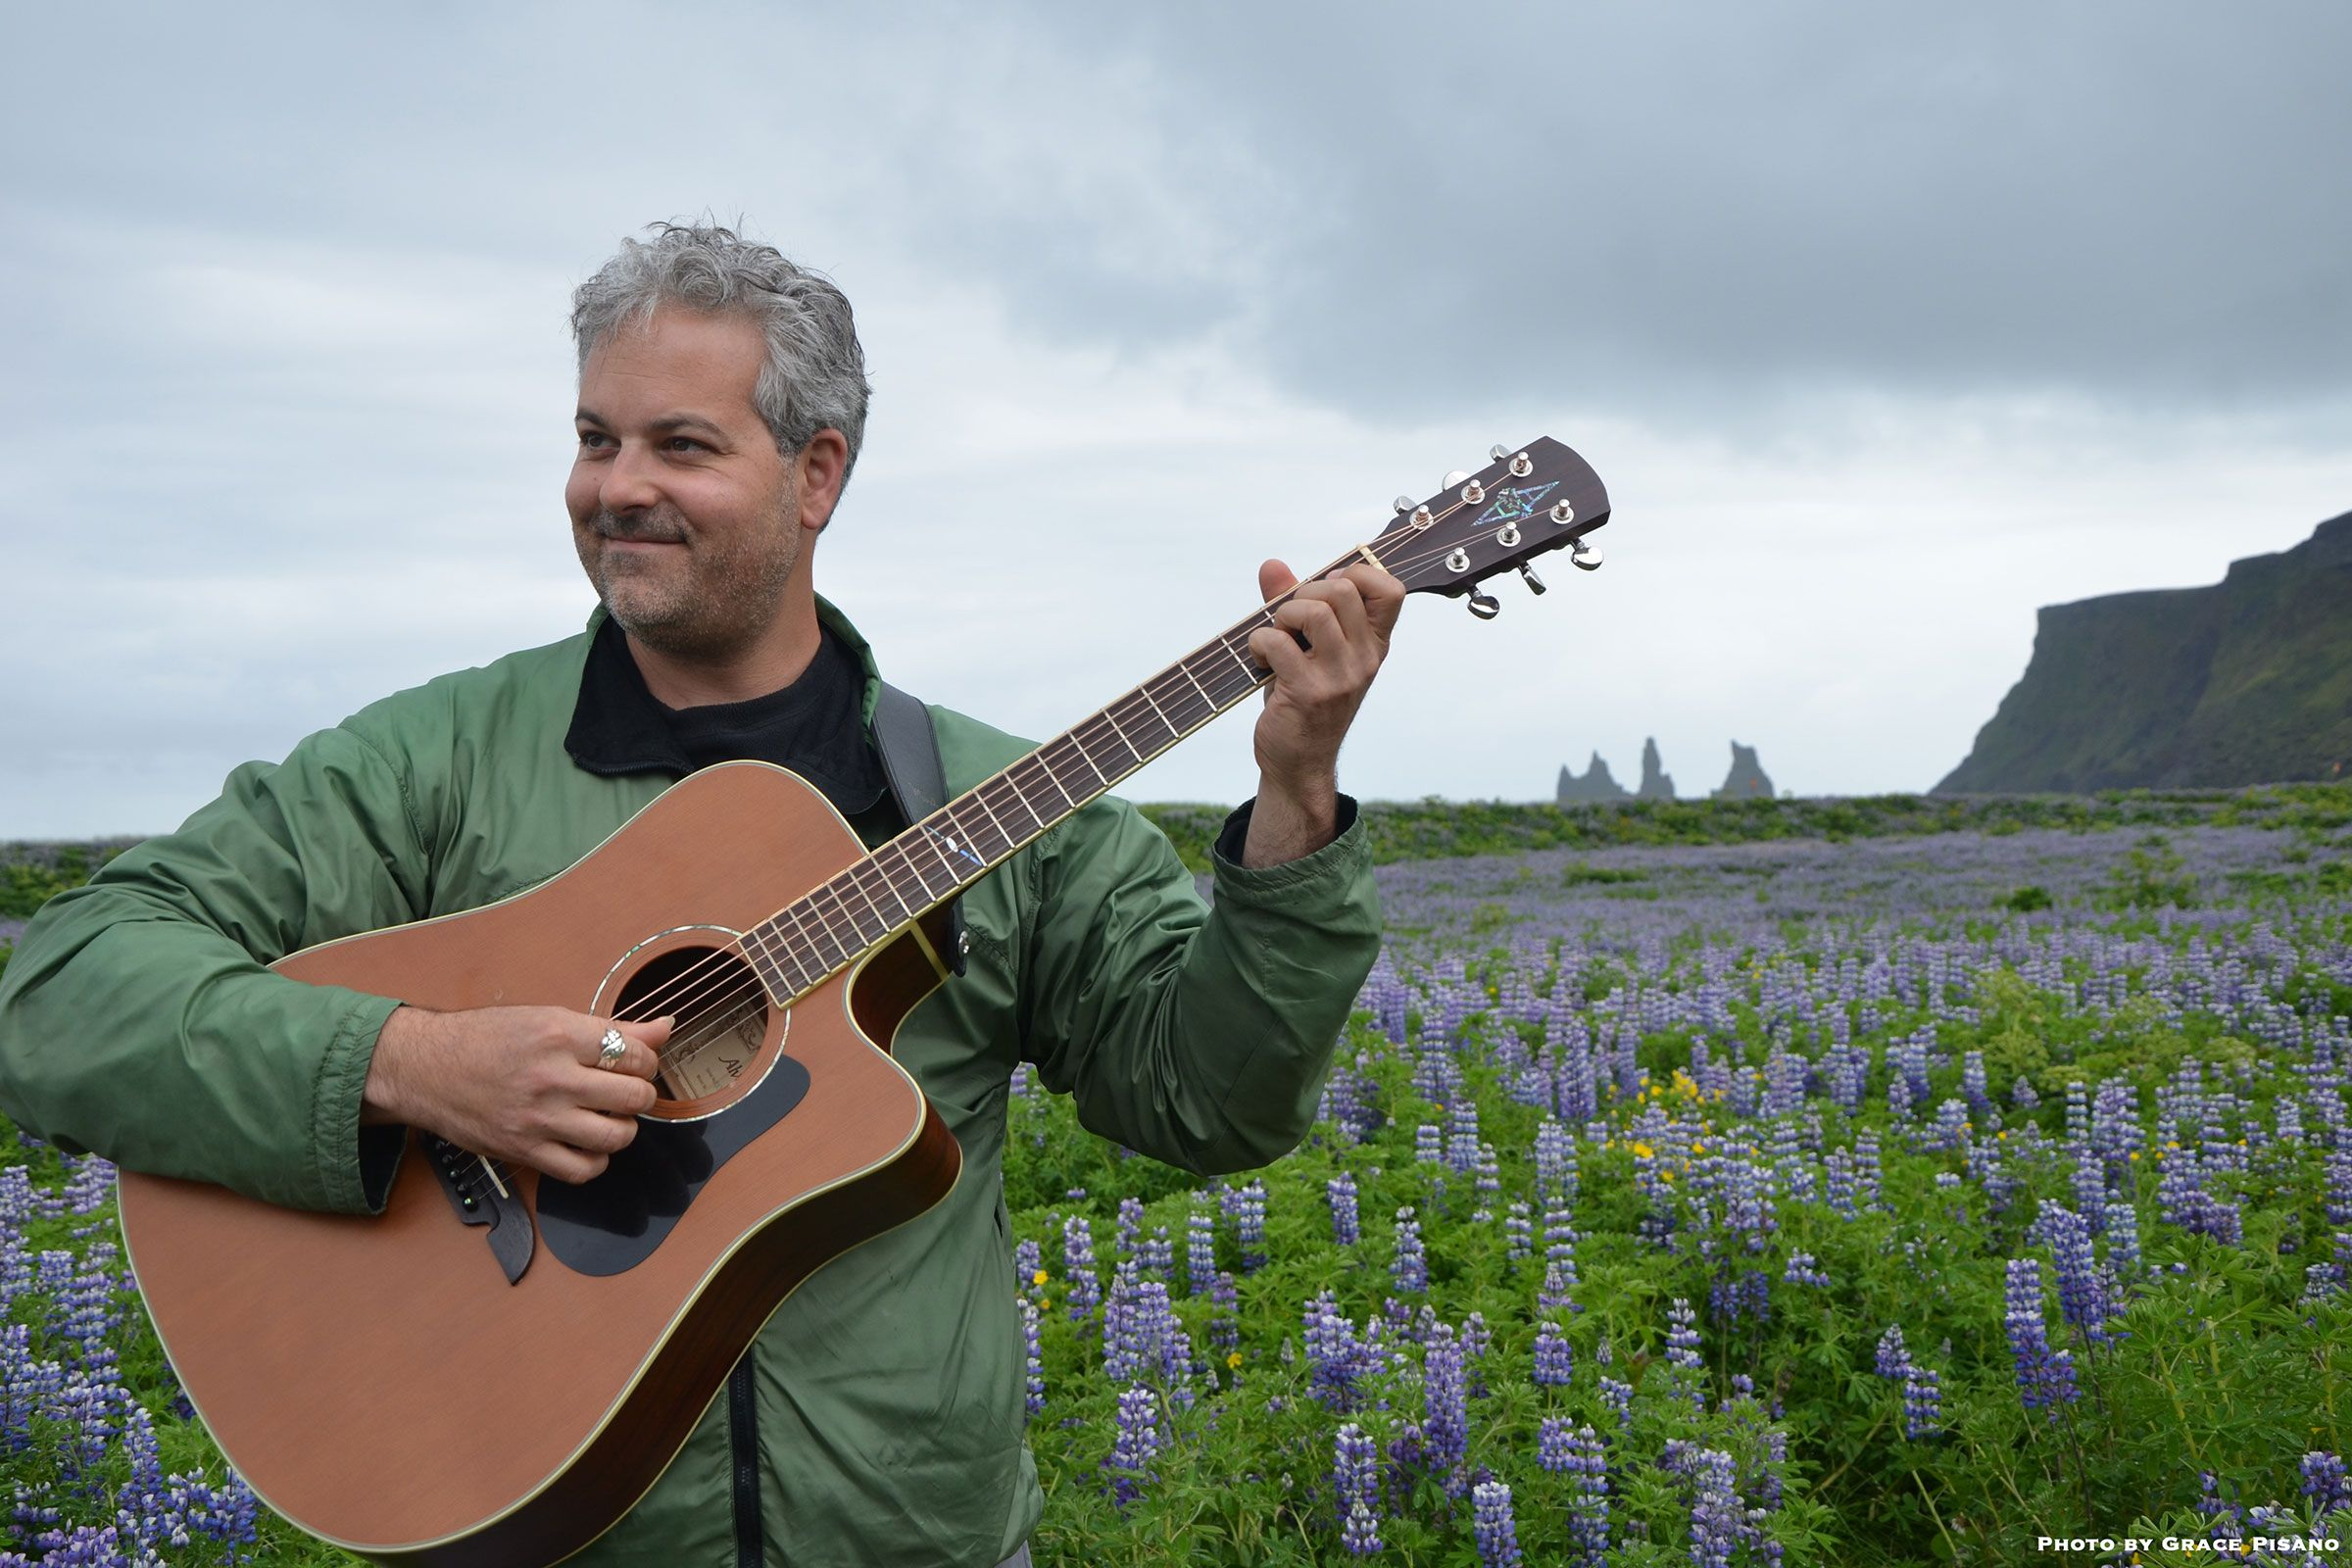 Man playing the guitar outside in a flower field